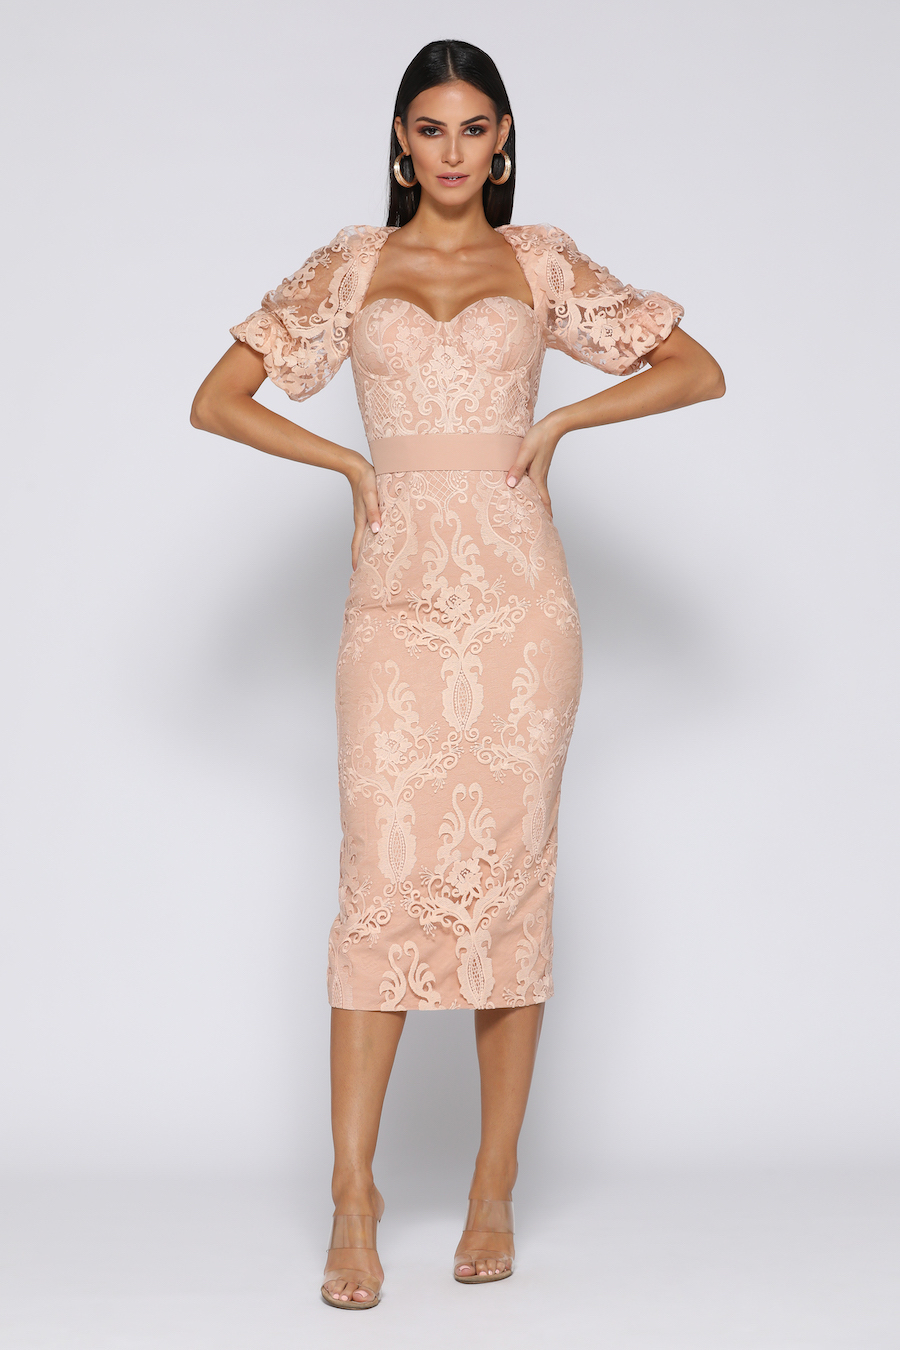 Lace dress features puffed sleeves and waist belt.